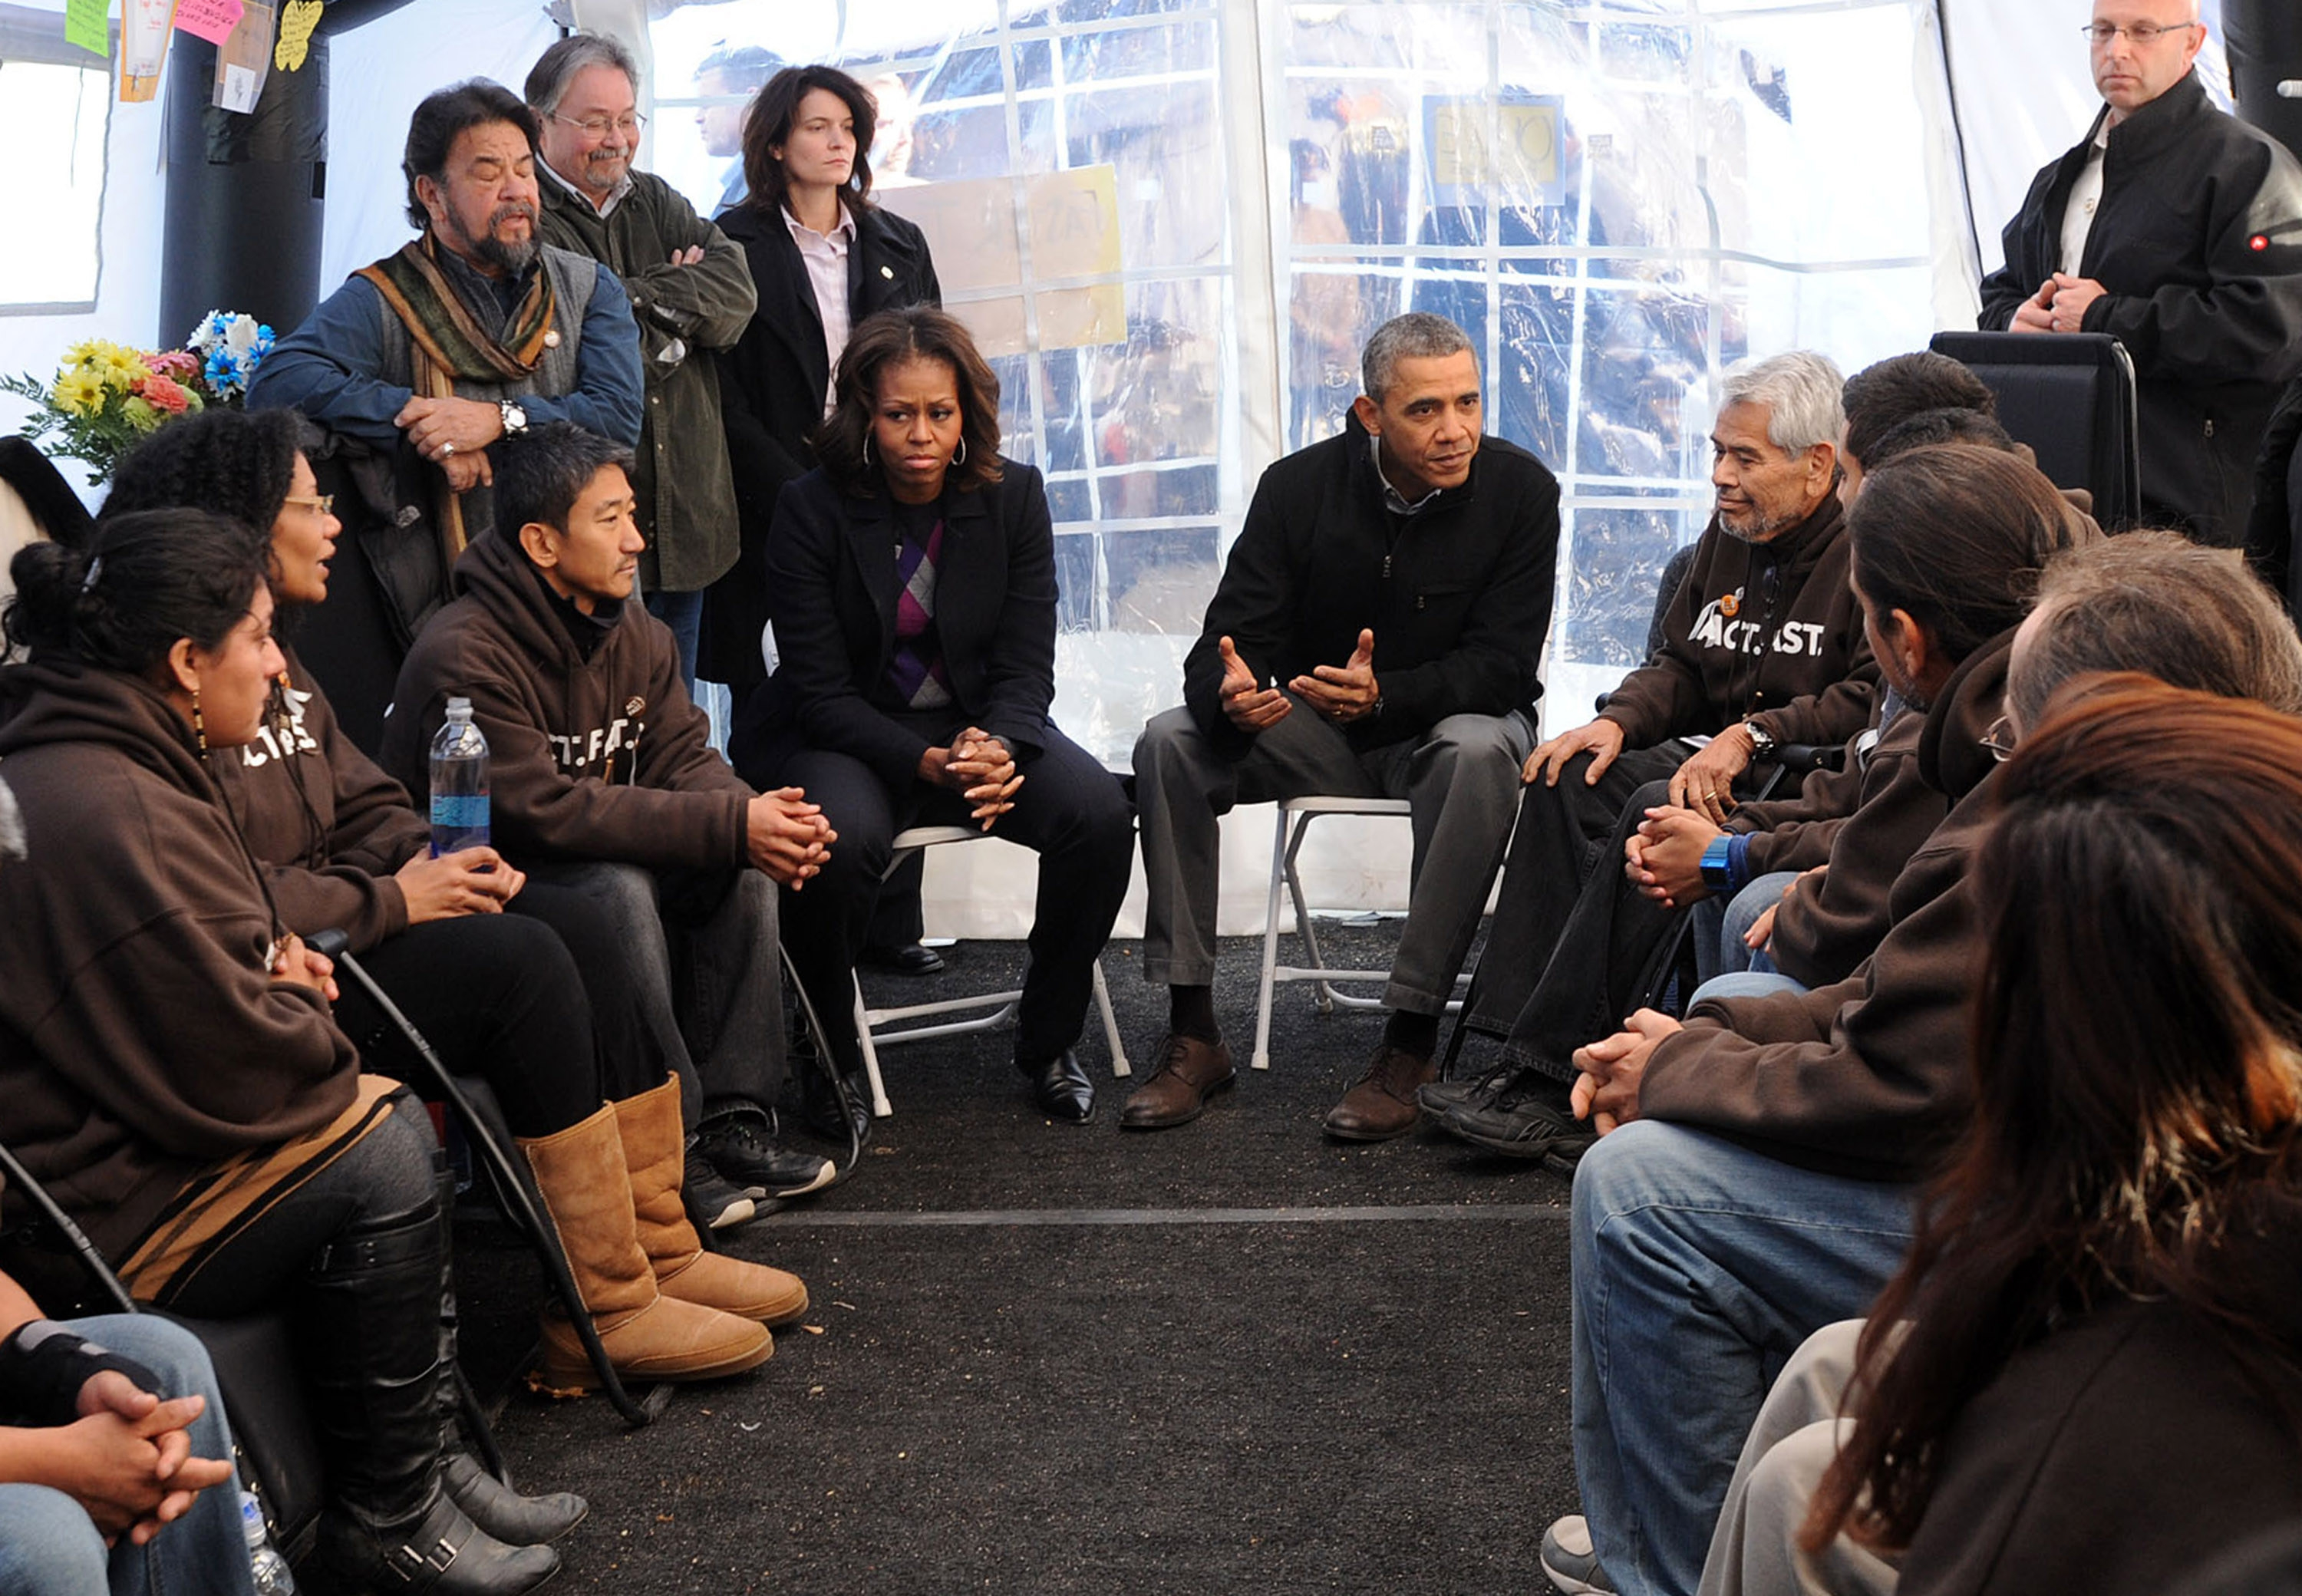 President Obama and his wife, Michelle, meeting Friday with those on a hunger strike on the National Mall, voiced concerns for the strikers' health.